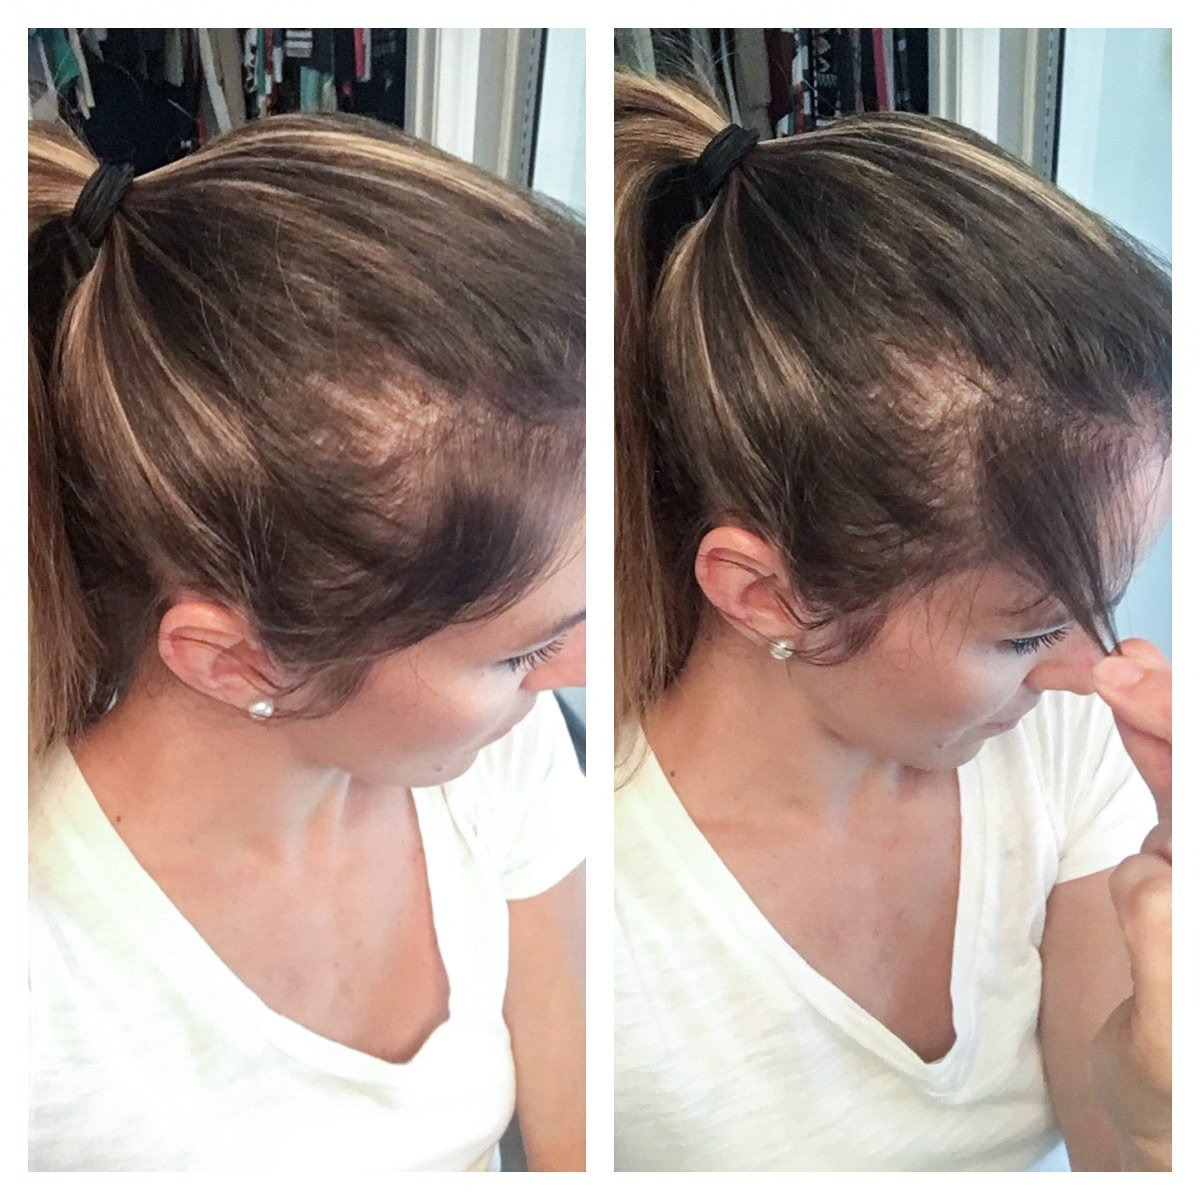 Formidable Postpartum Hair Loss Hair Reviews Hair Thickening Collagen Taking Collagen Ments Why I Take Collagen Collagen nice food Collagen For Hair